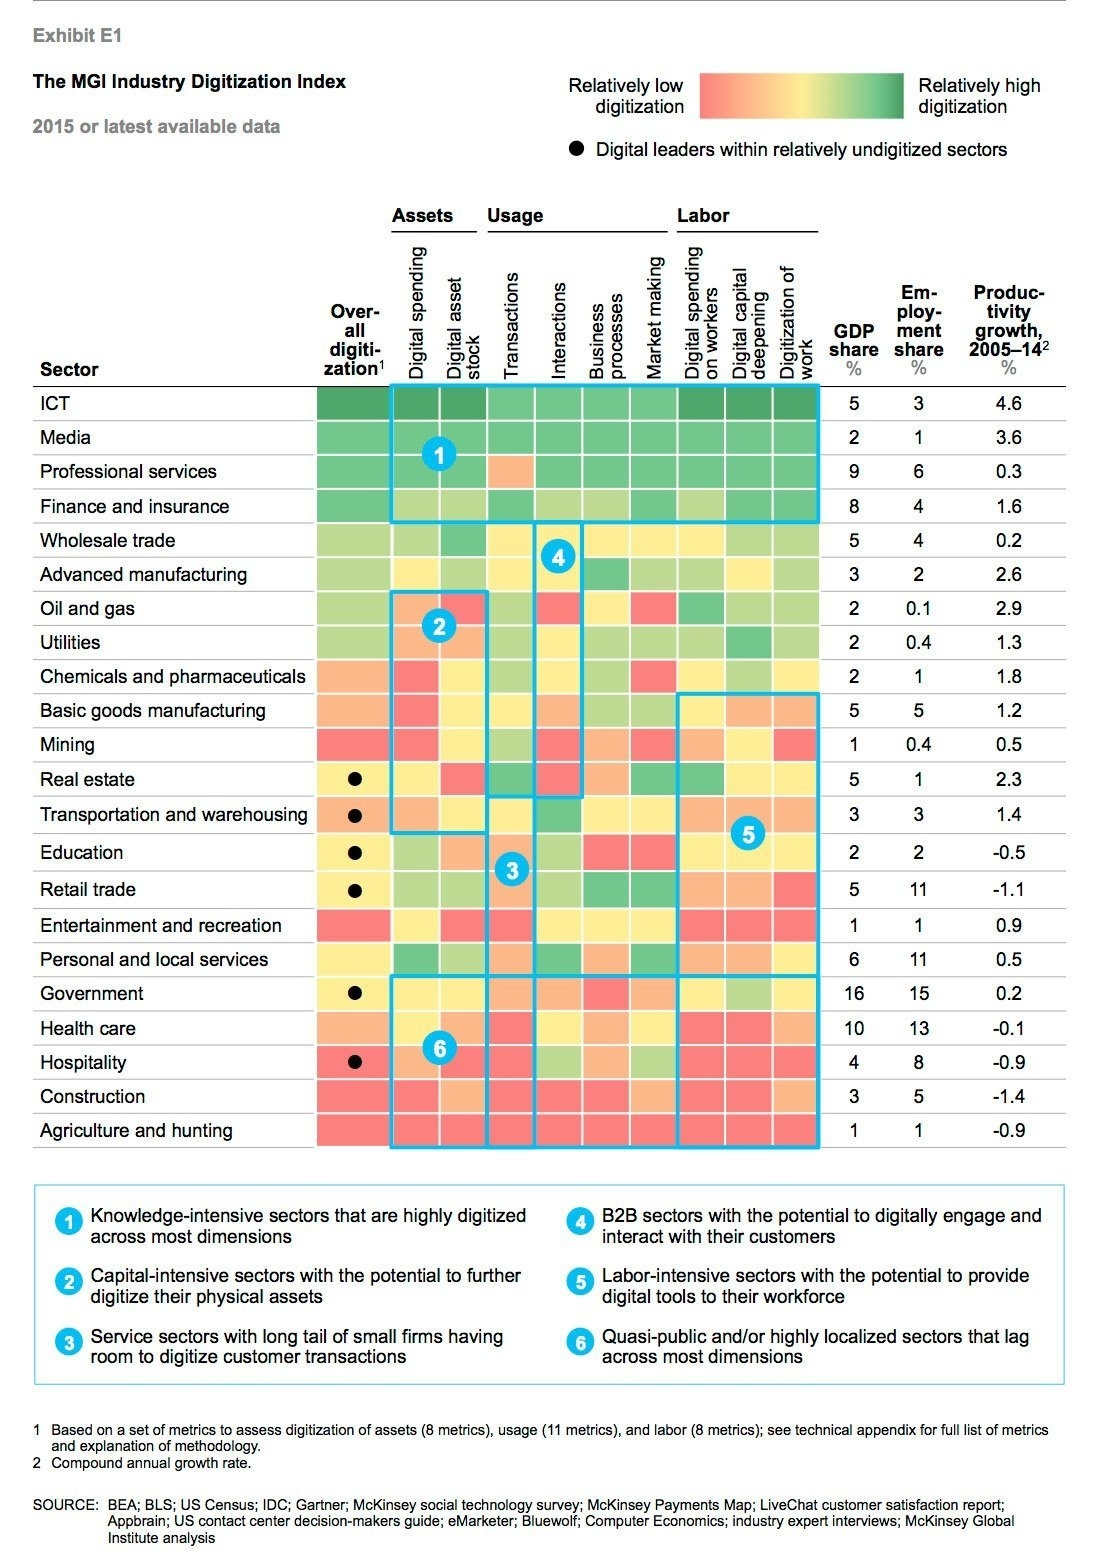 The MGI Digitization Industry Index